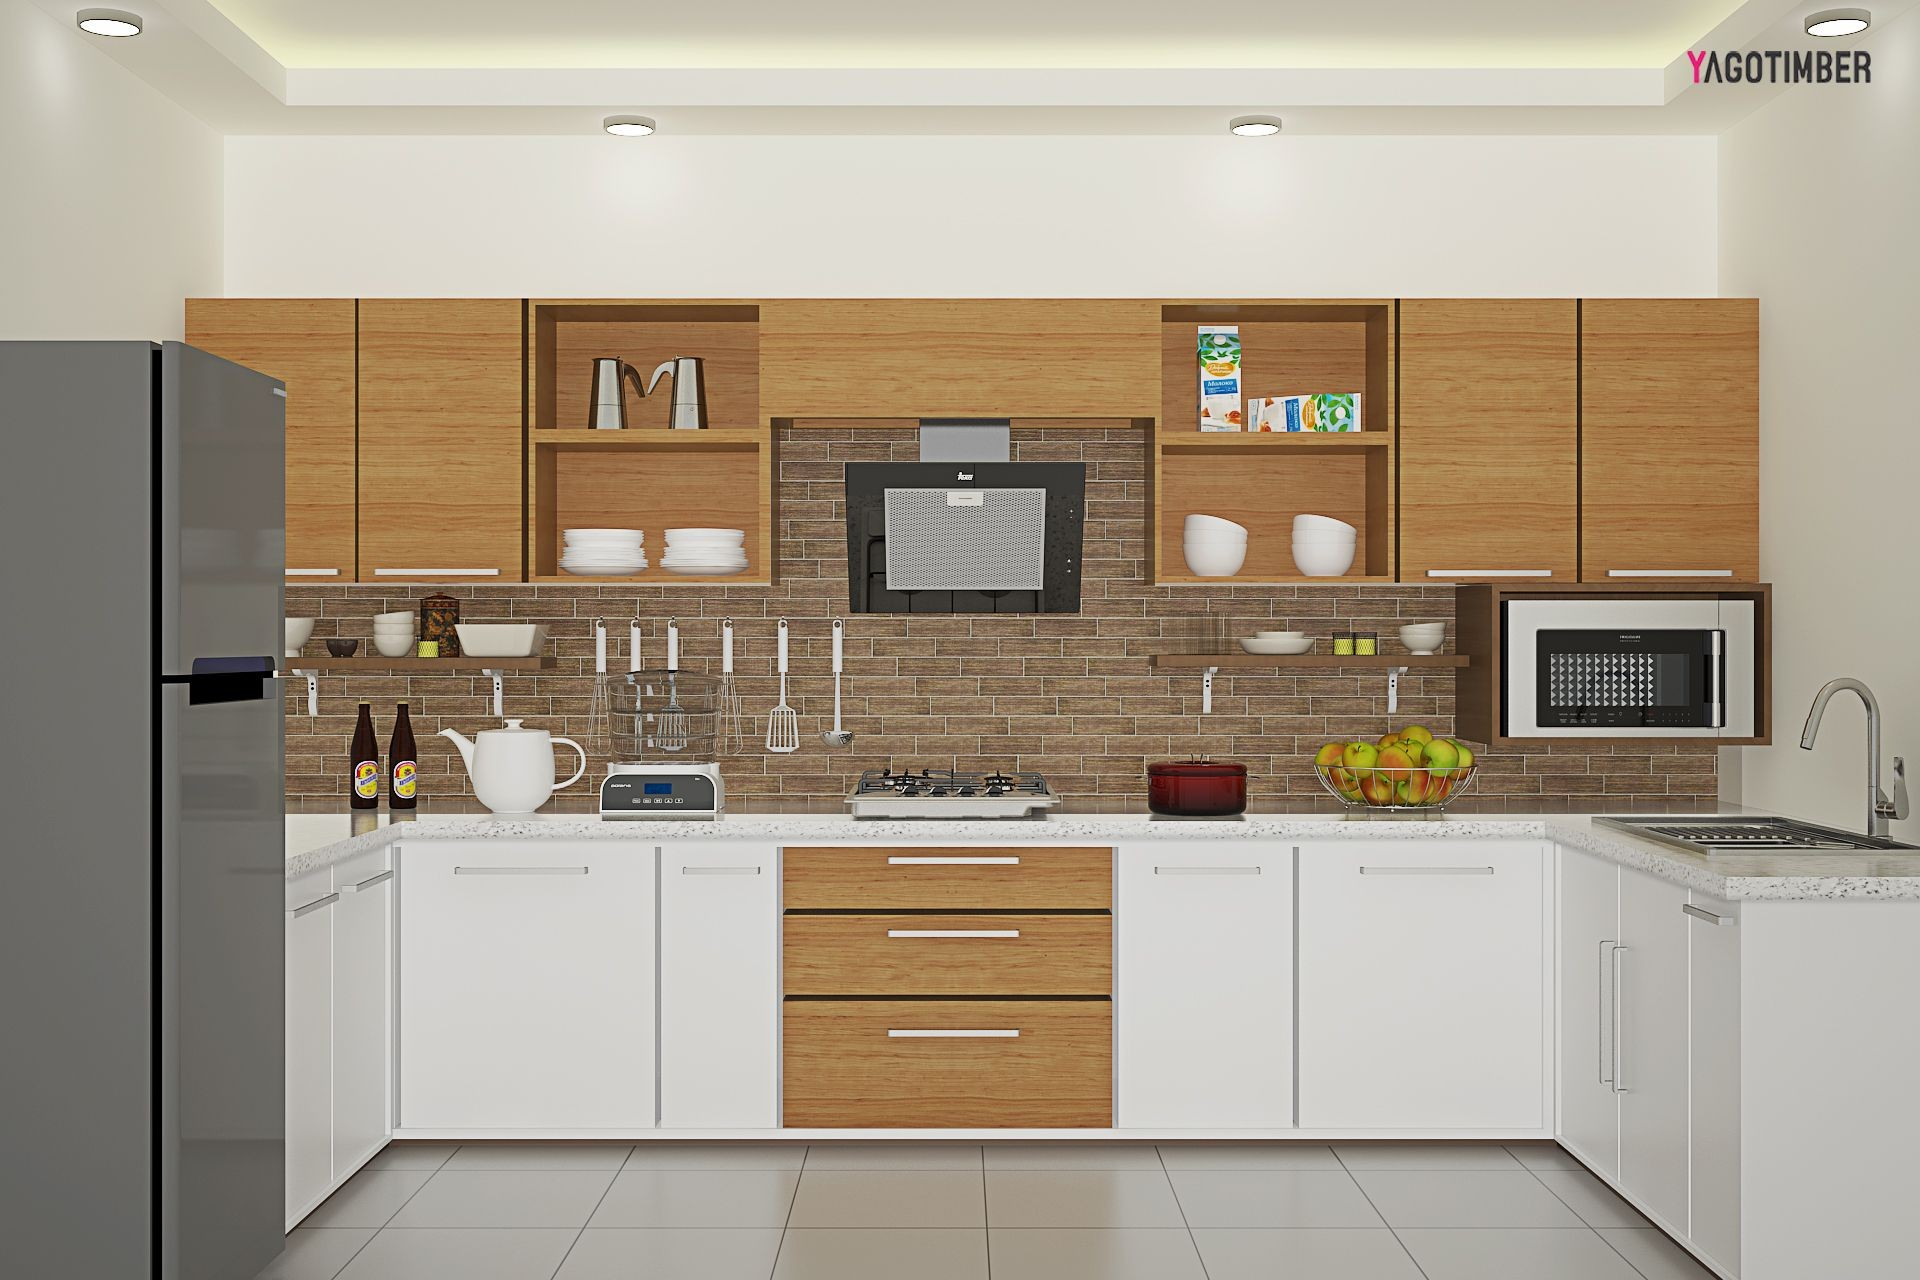 Design Kitchen Set Rumah Minimalis Terbagus Untuk is A U Shaped Layout the Right Choice for Your Kitchen — and if so